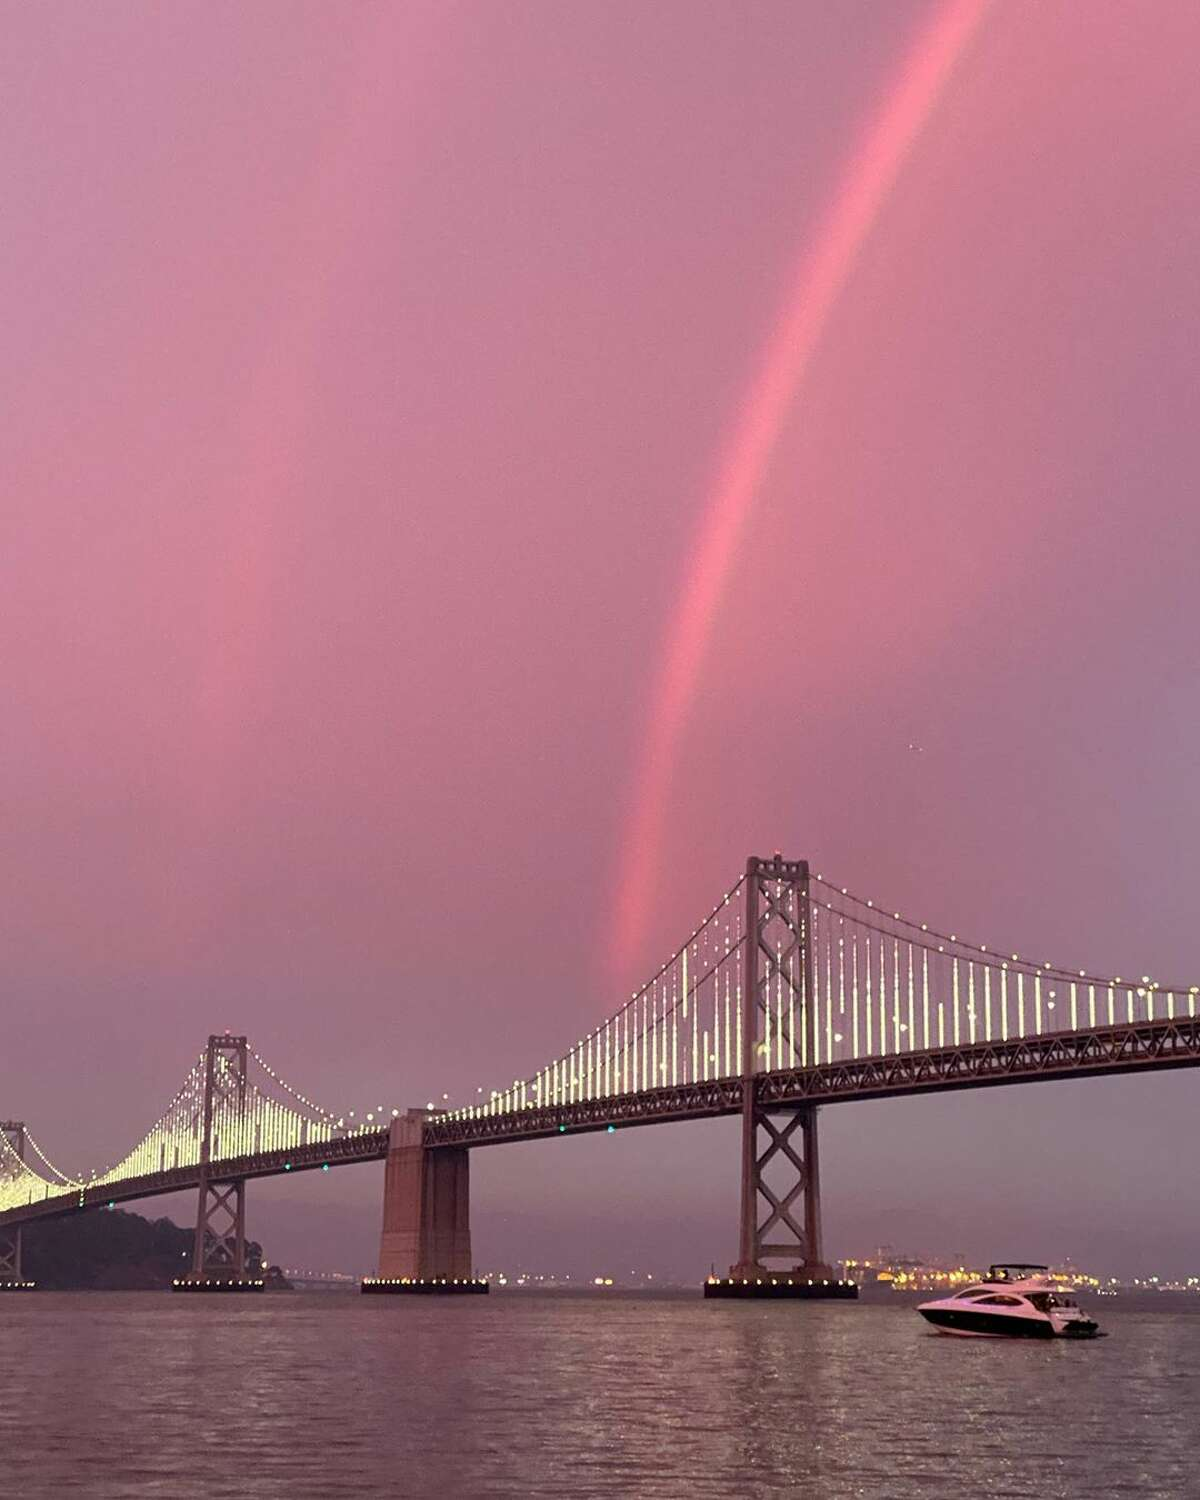 An apparent double rainbow during sunset over the Bay Bridge on Sunday, Aug. 23, 2020, as wildfires raged across California.(Photo: fashionablya / Instagram )